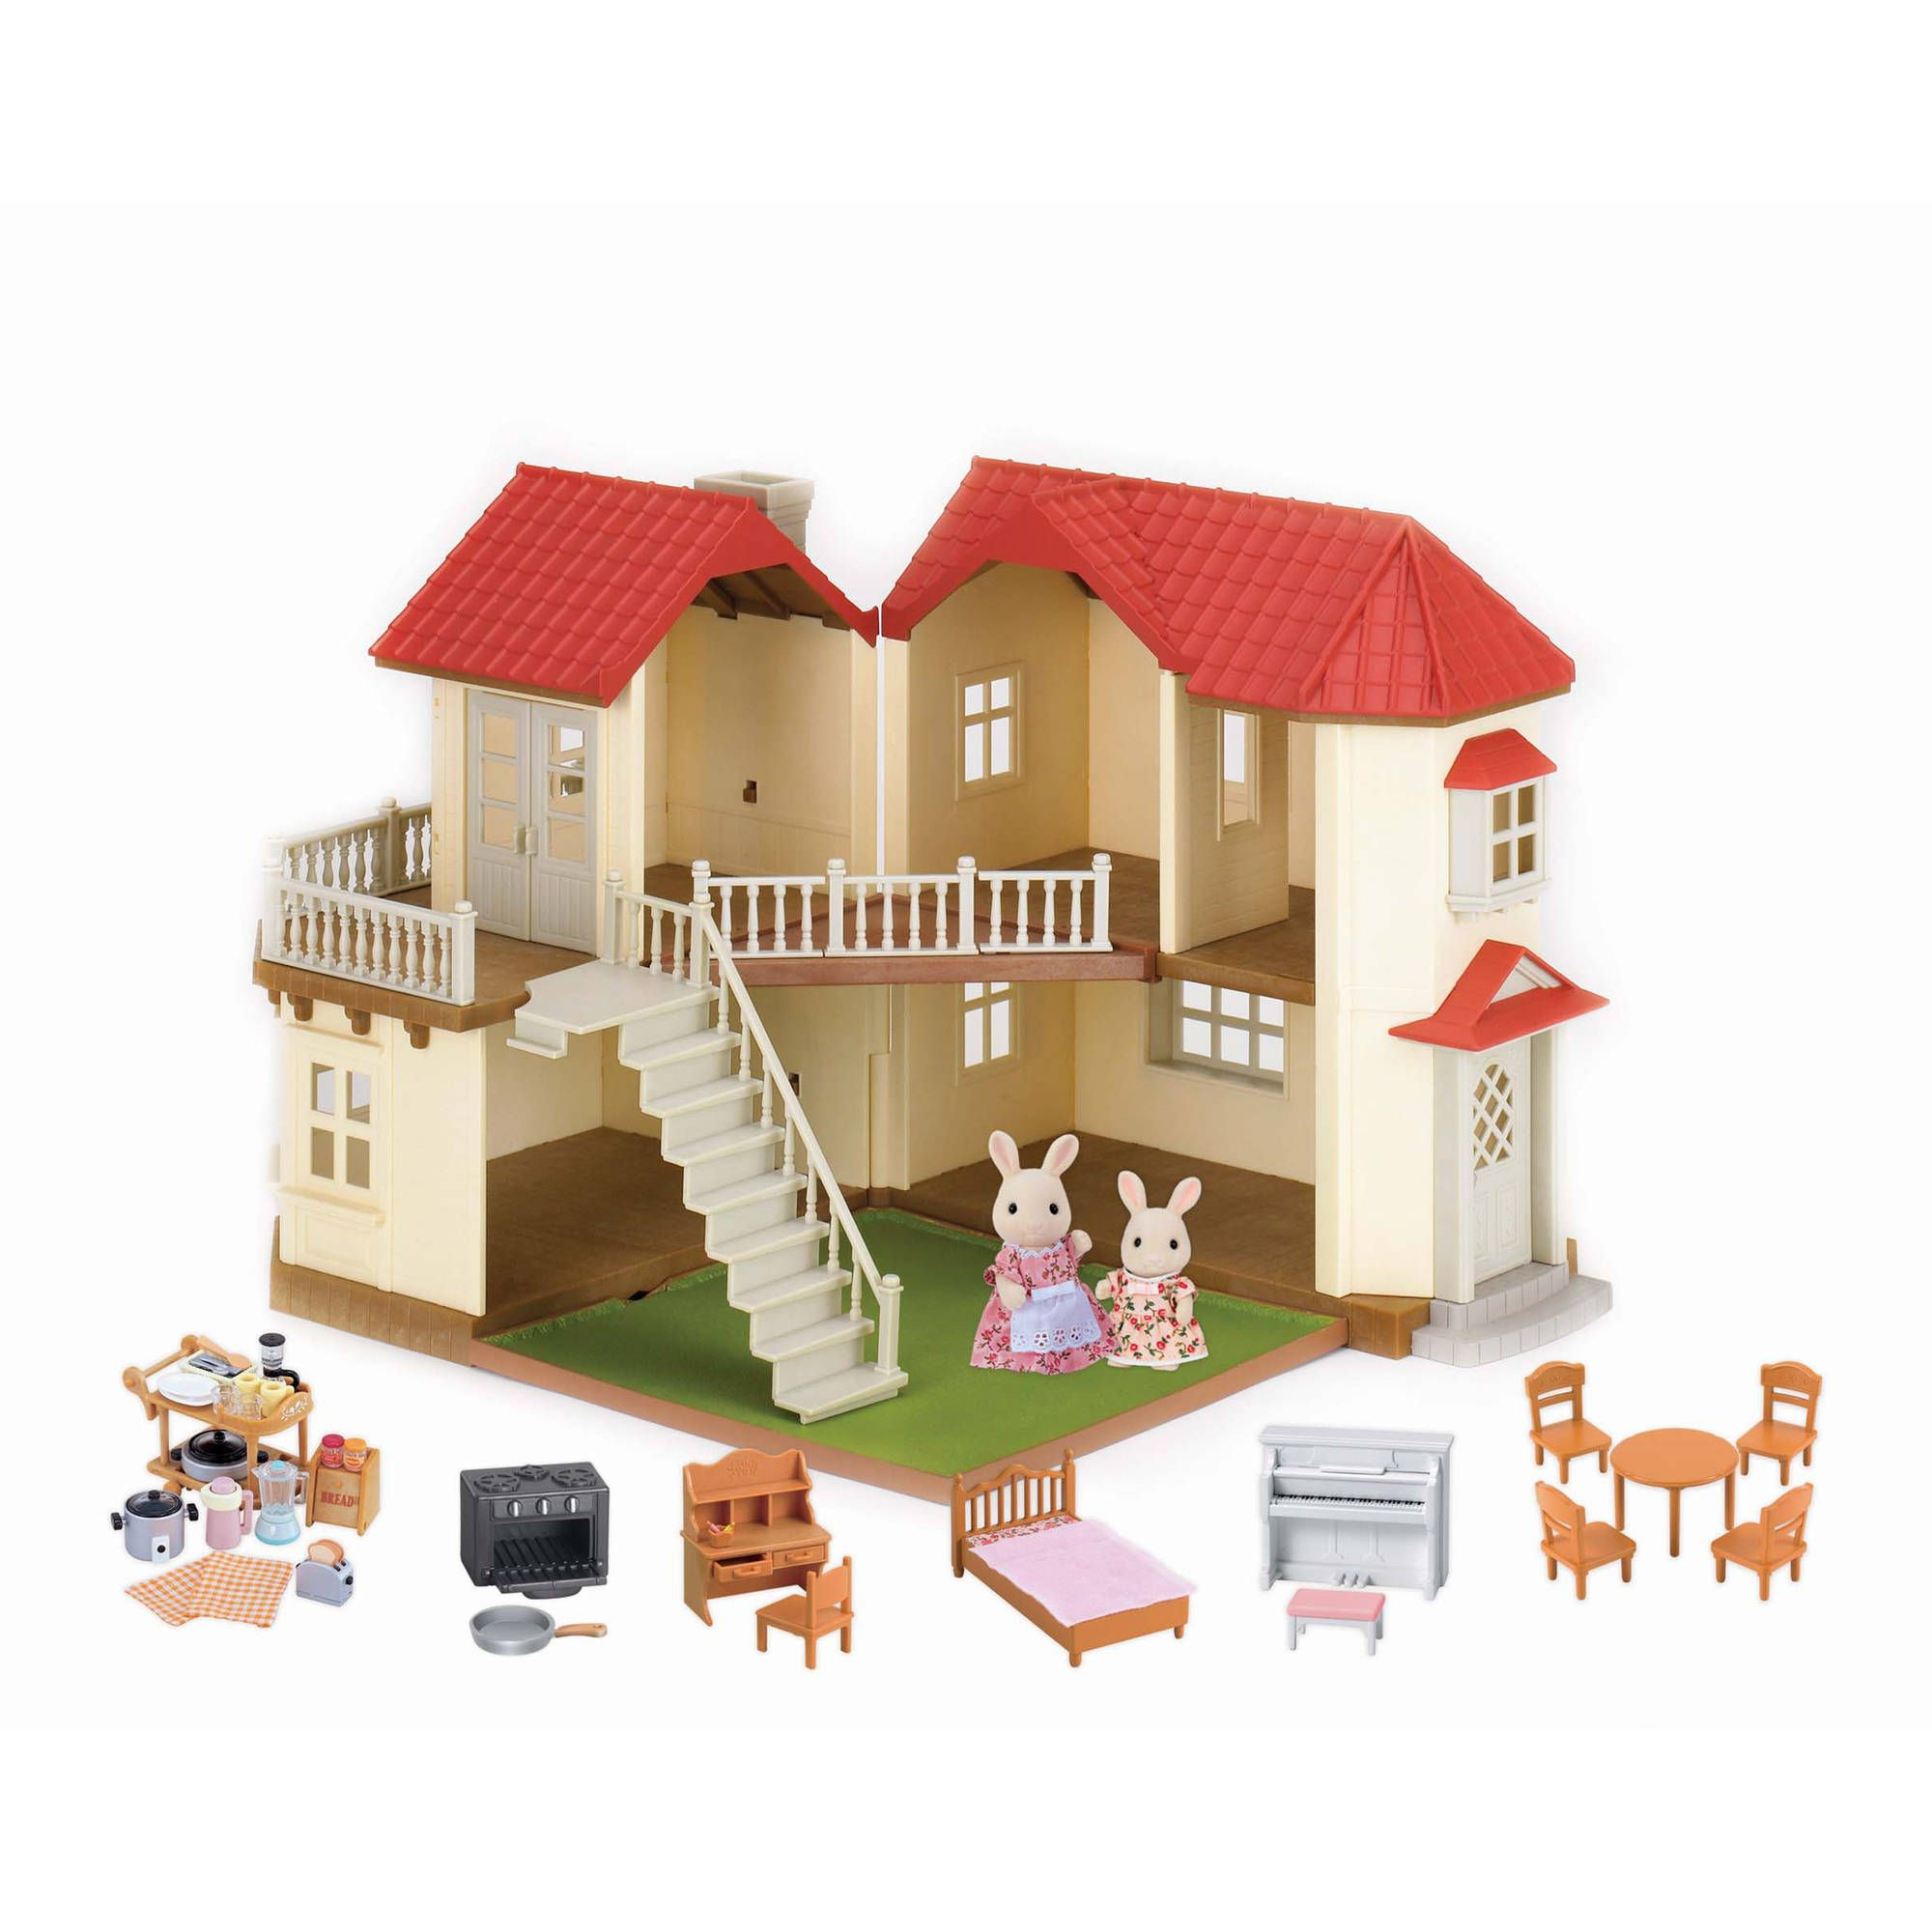 Toys in 2020 Dollhouse furniture, Home gifts, Red roof